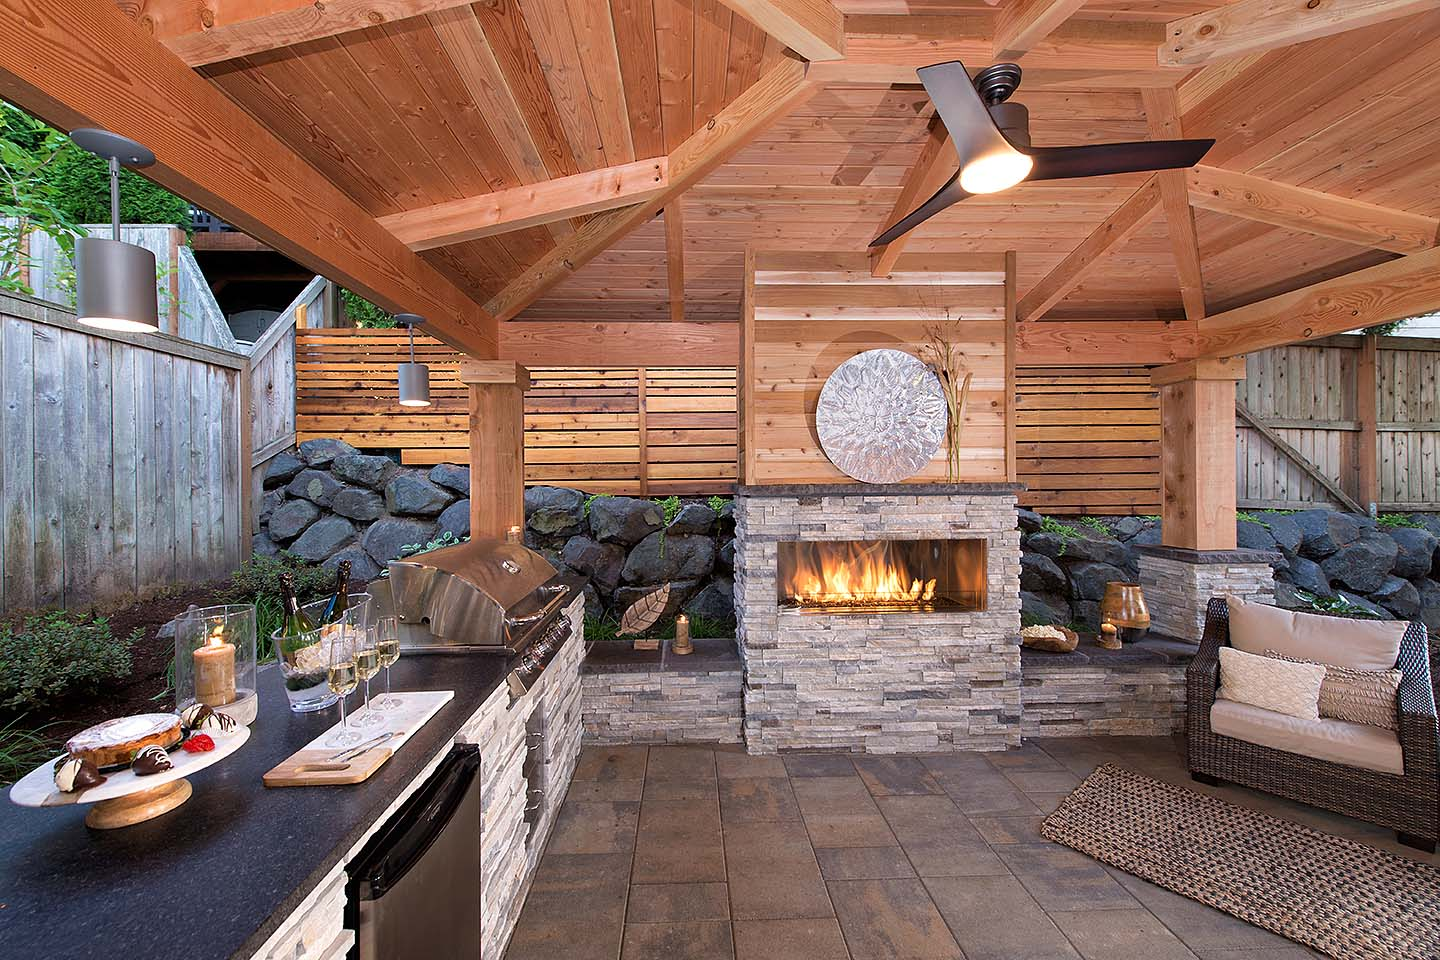 50 Outdoor Fireplace designs